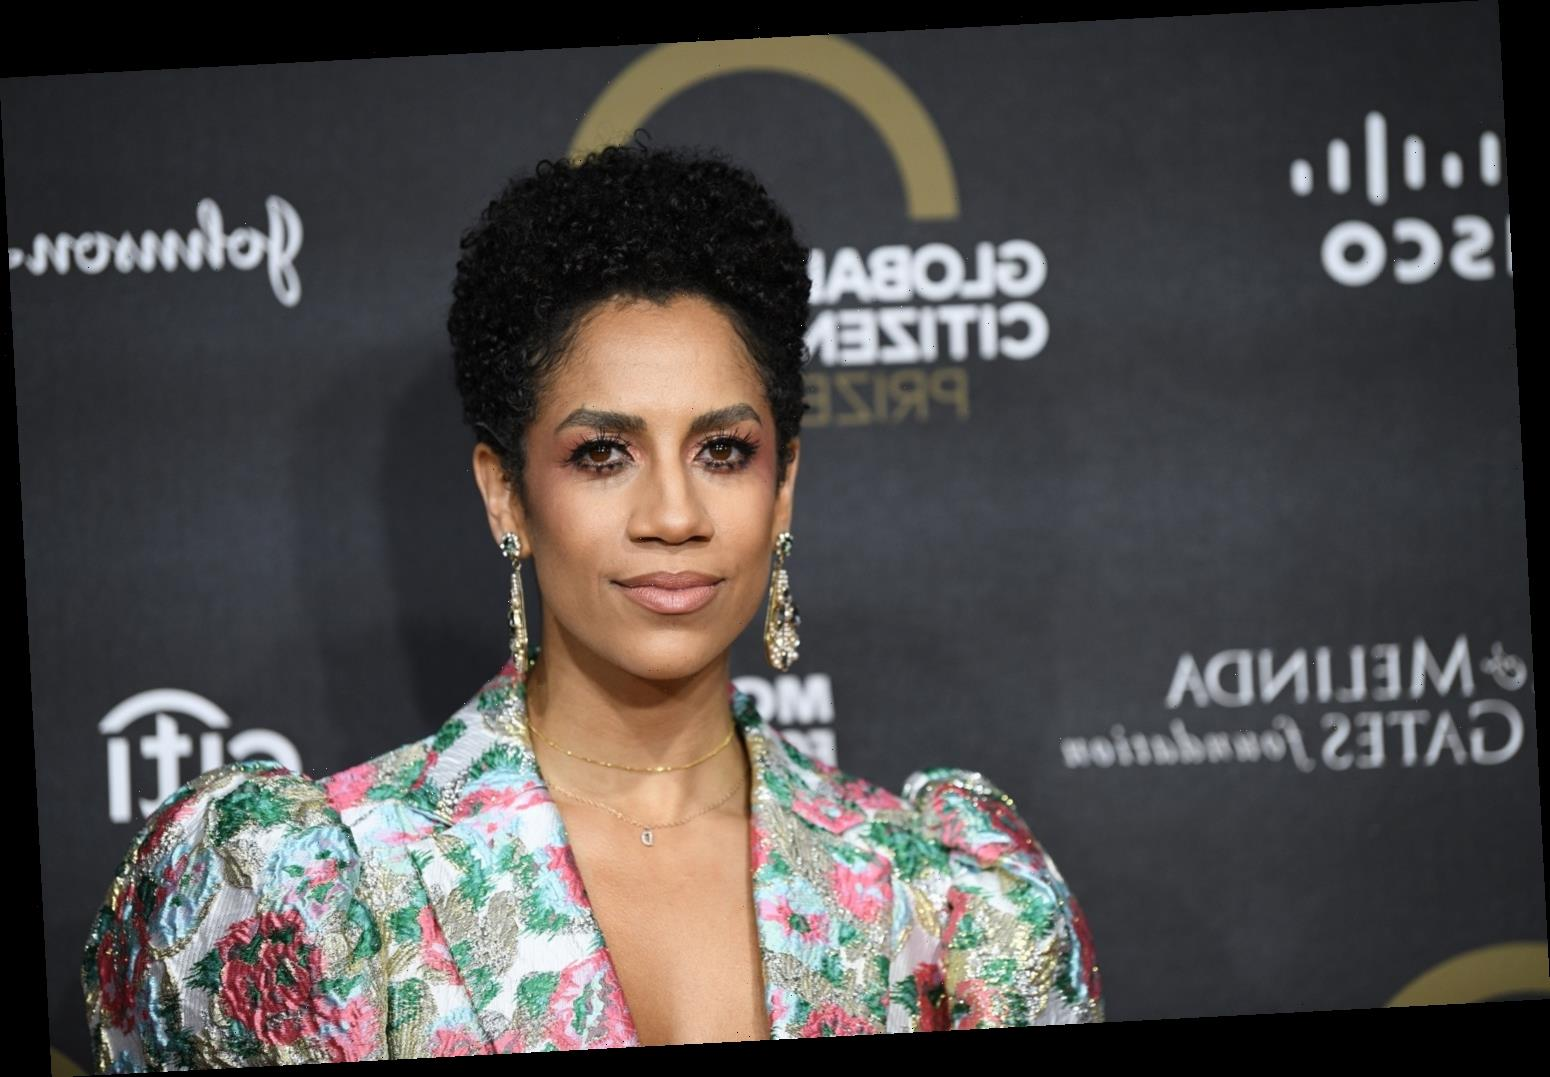 'The Expanse': Dominique Tipper Dishes on Naomi Nagata's Struggle With Filip Inaros